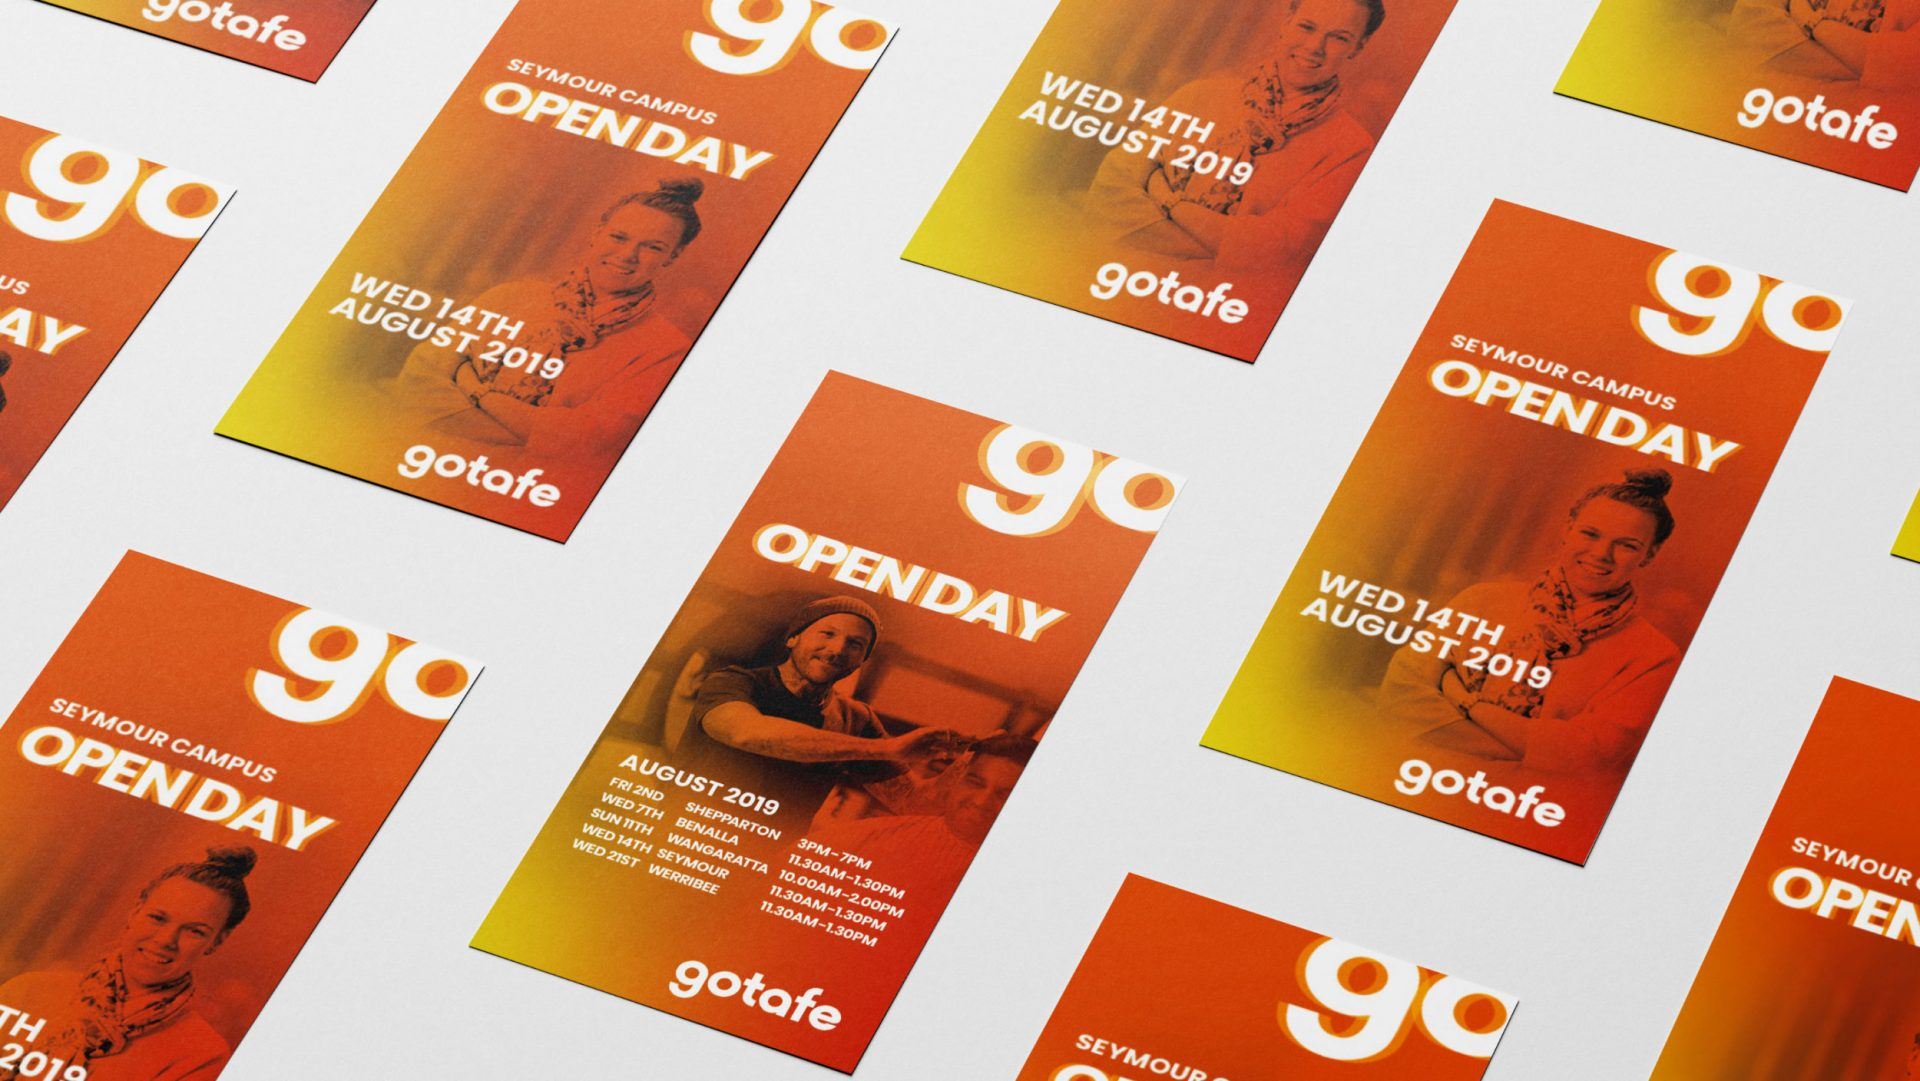 Open day flyers for gotafe